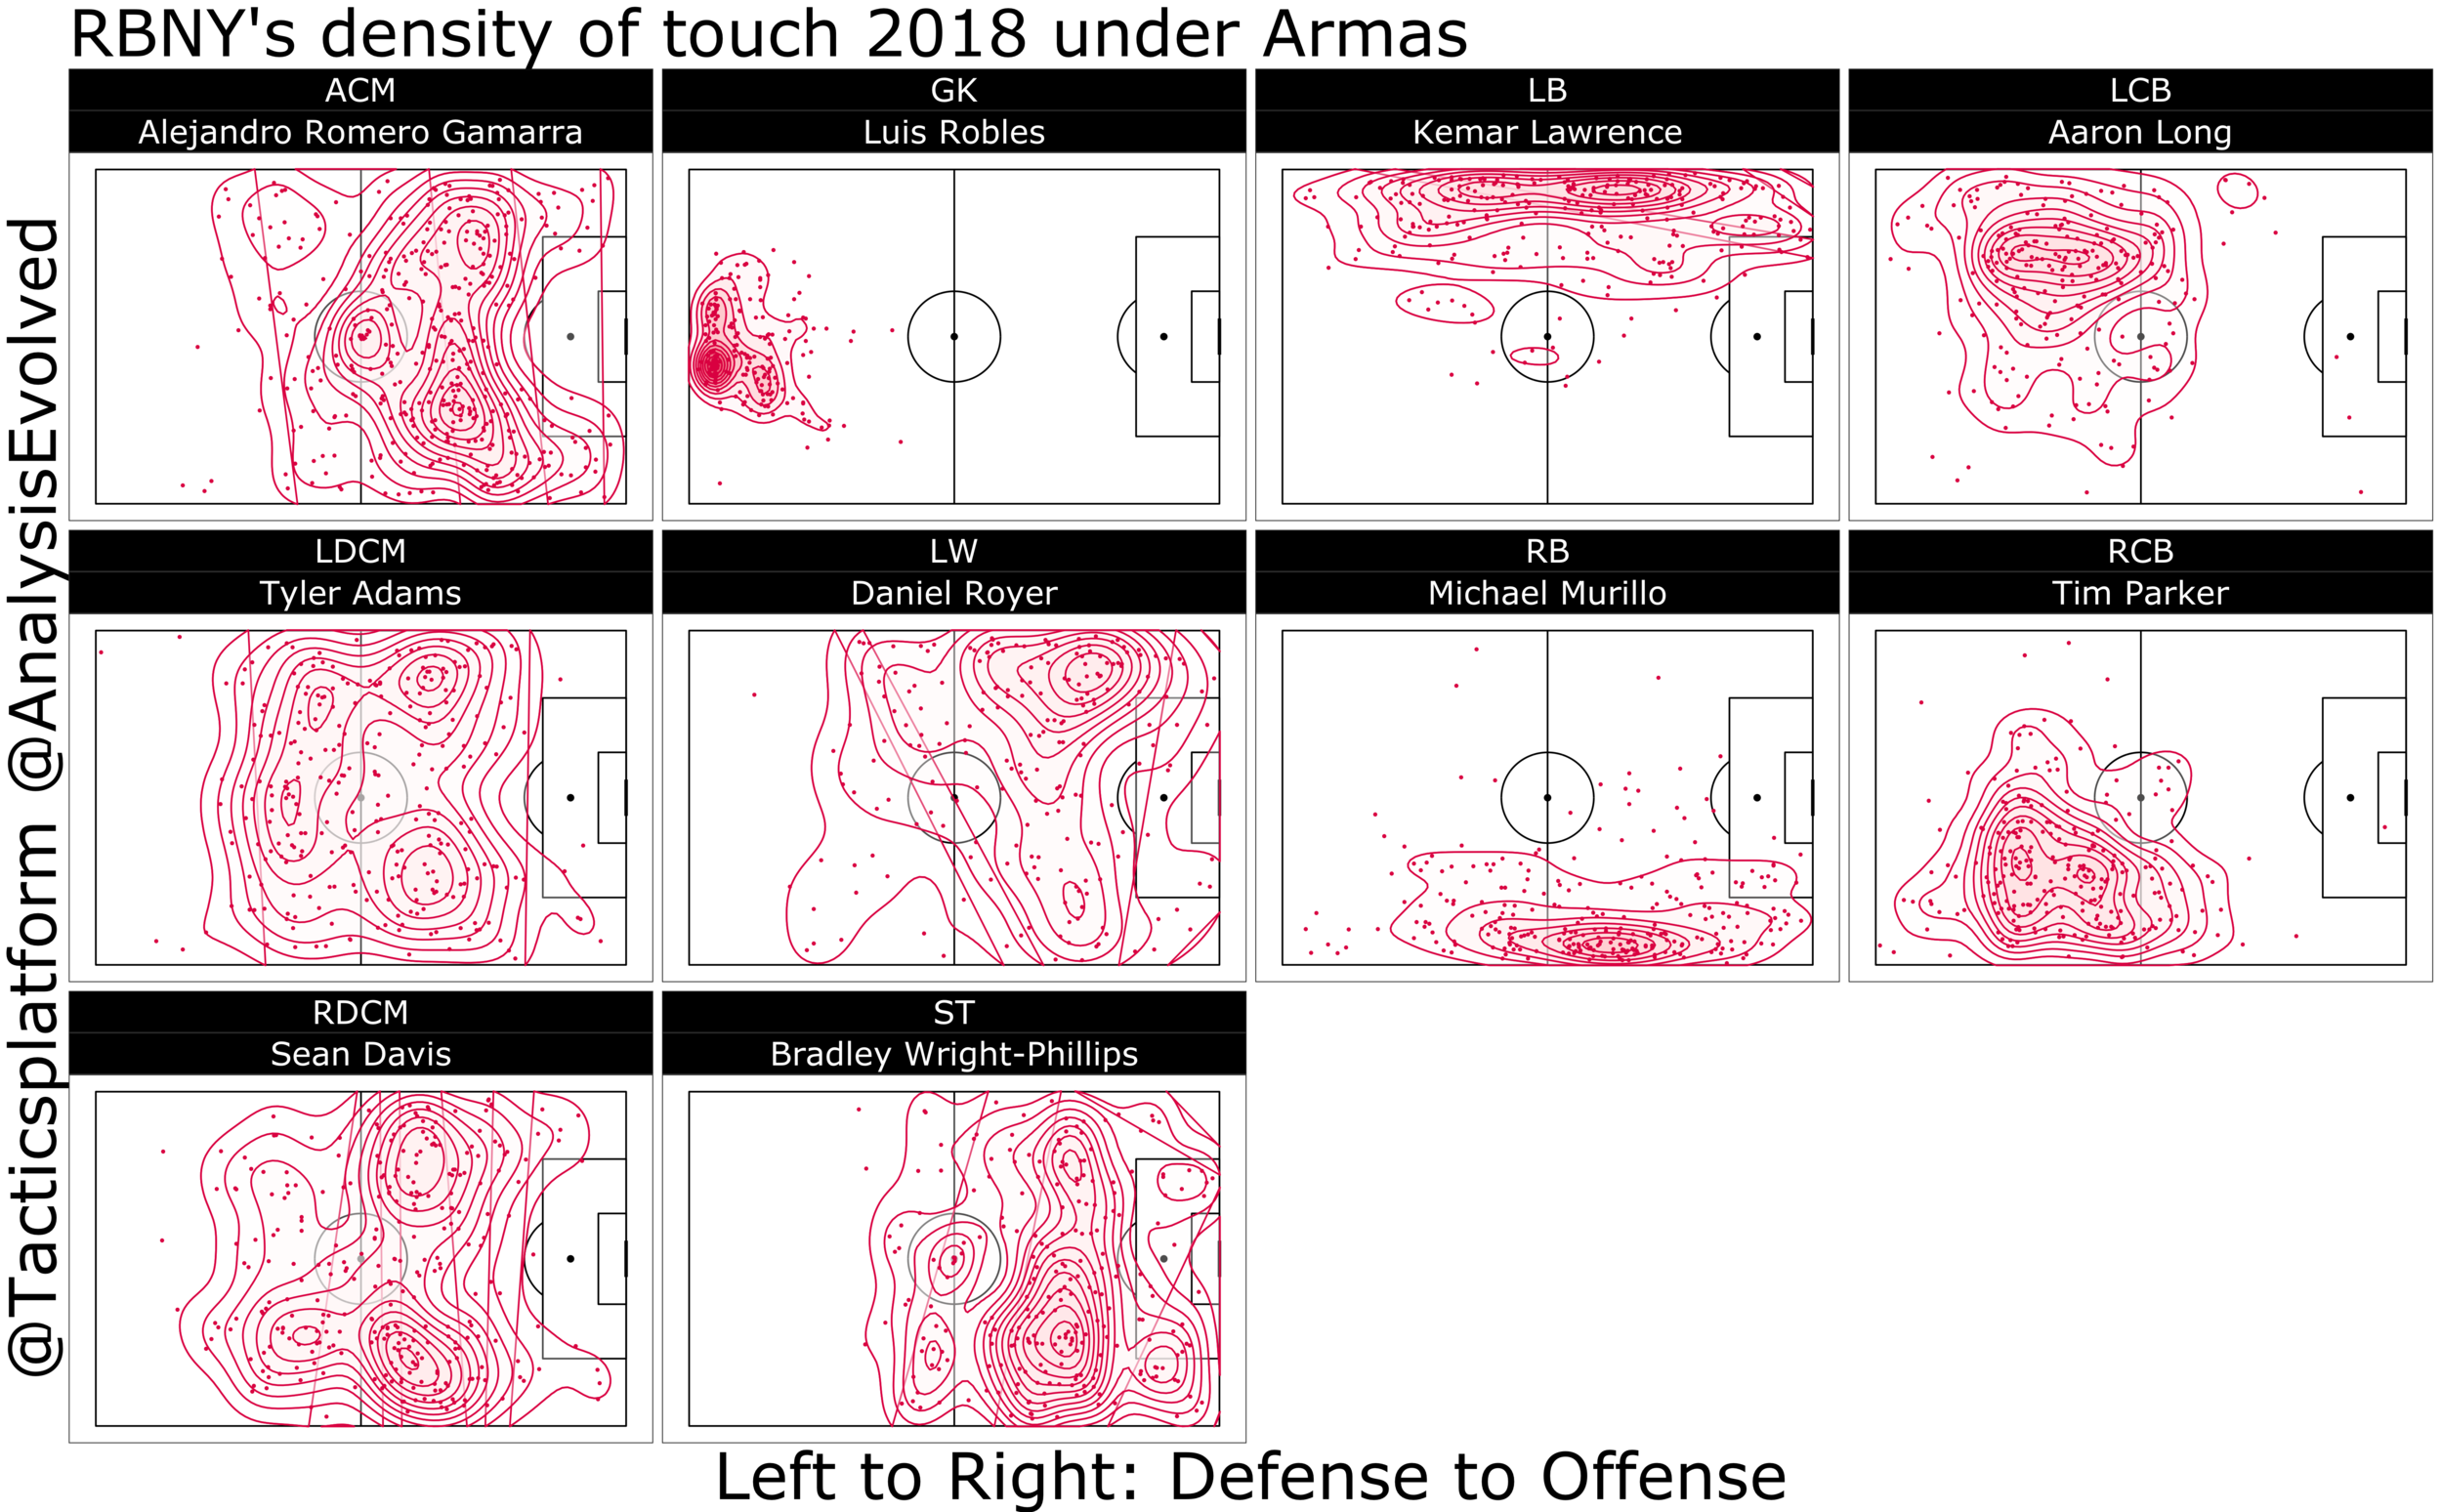 The contour density distribution of player's touches under Armas. Only player with more than three starts at one position are shown.